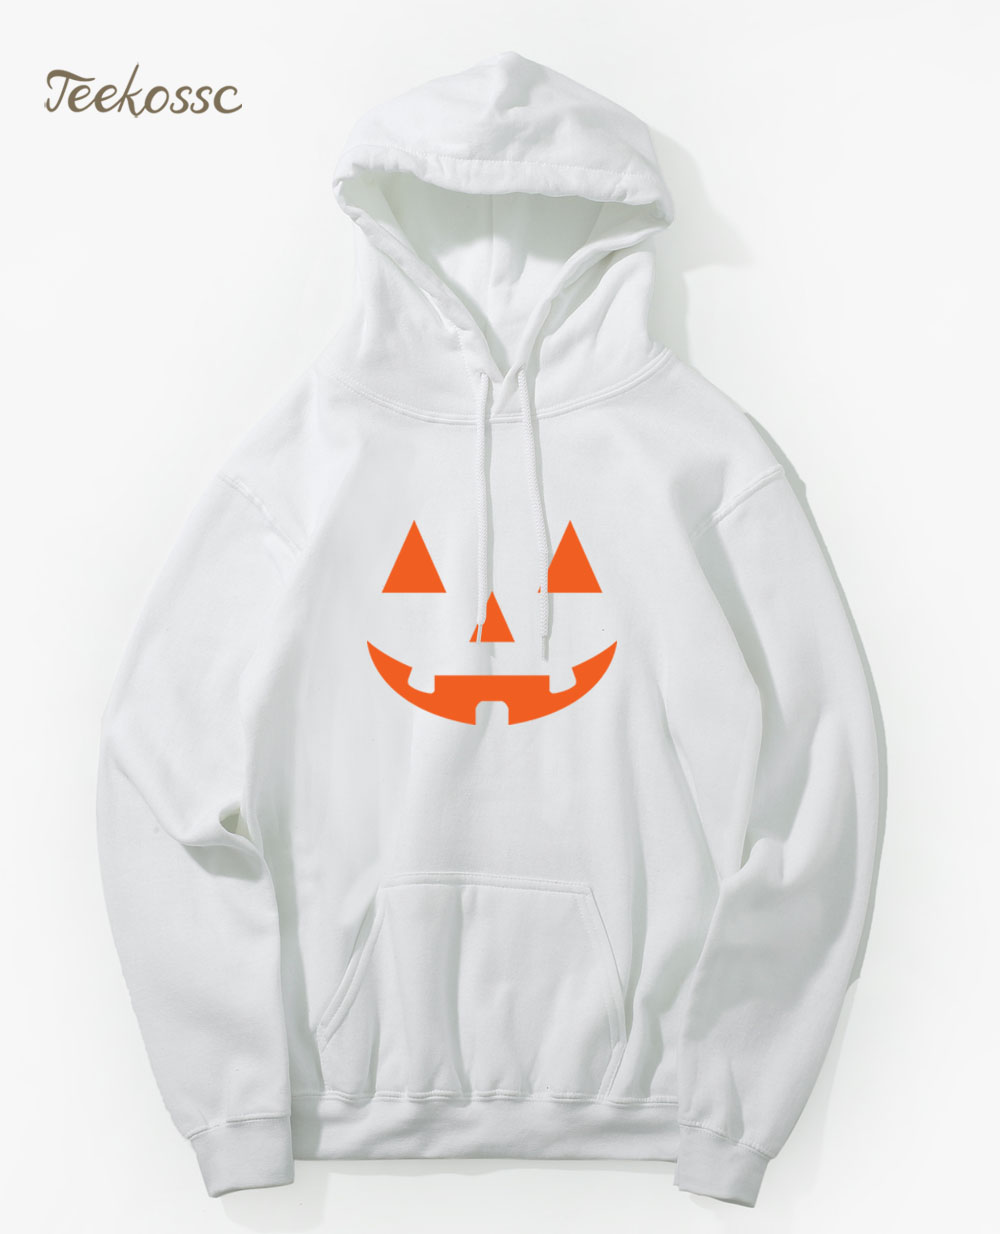 Jack O Lantern Pumpkin Halloween Clothing Hoodies Sweatshirts Men 2018 New Winter Autumn Hooded Hoody Holiday Costumes Hoodie Men's Clothing